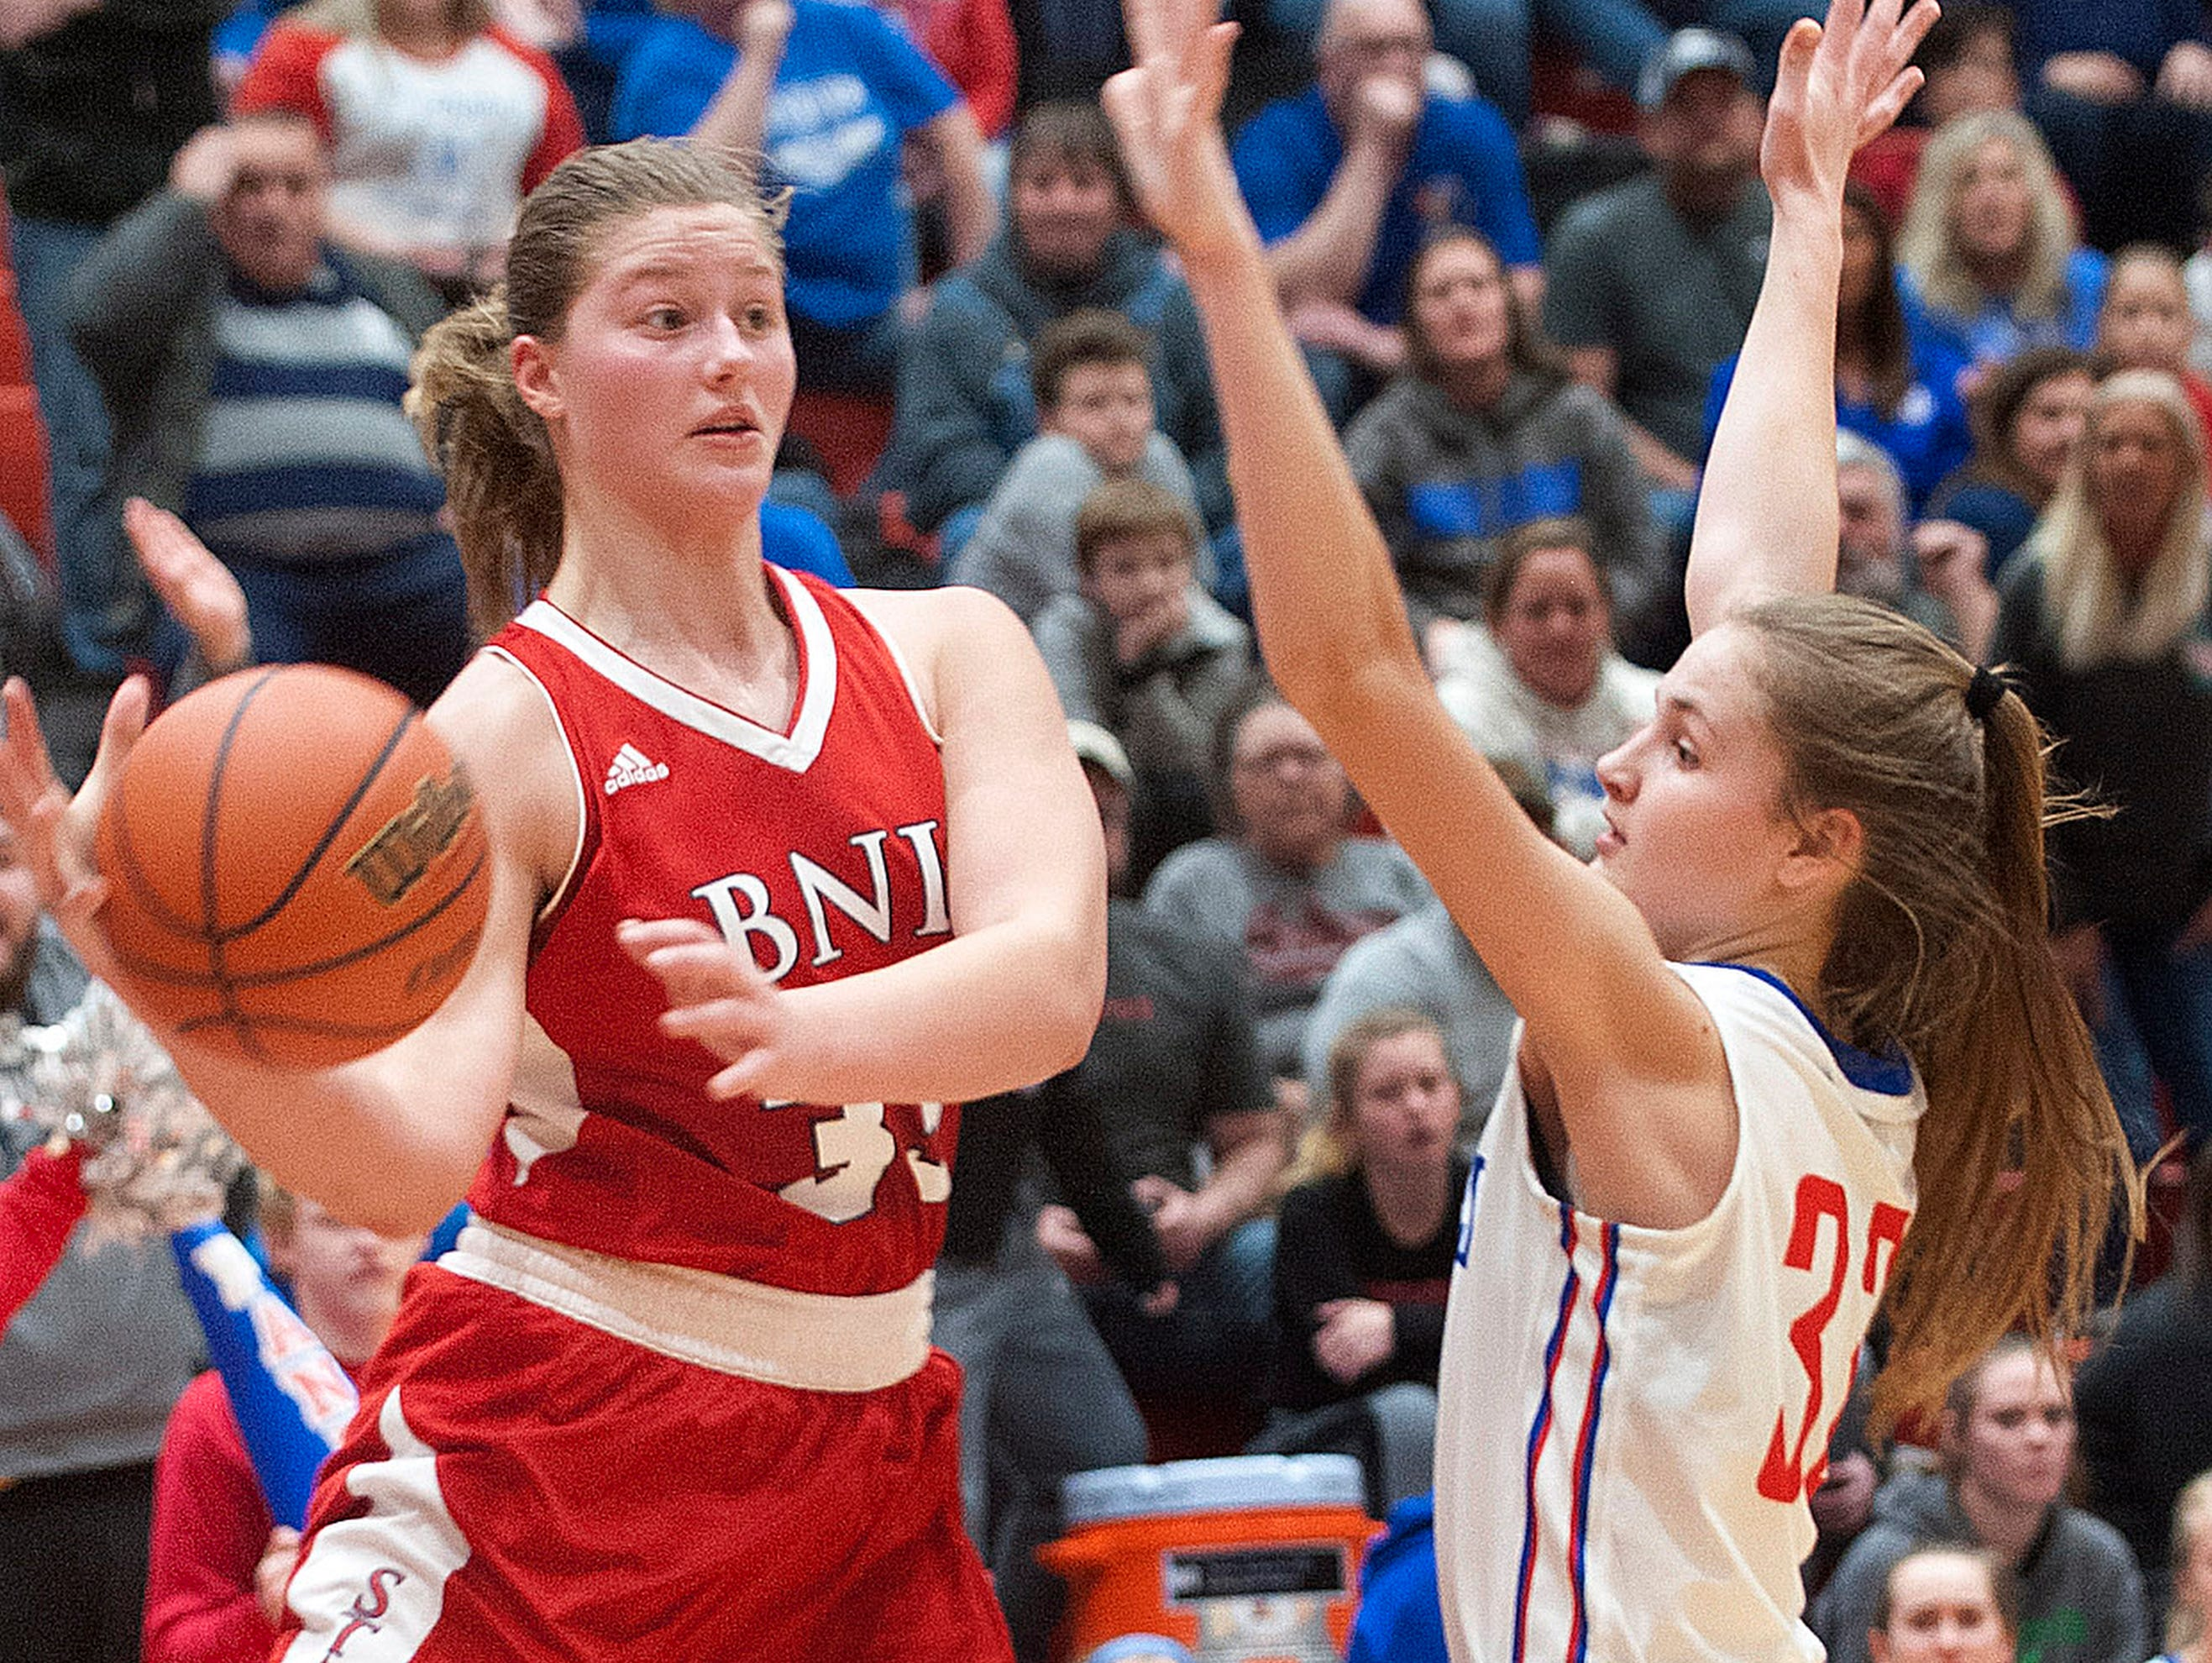 Bedford North Lawrence forward Jorie Allen looks to pass off as she is pressed by Jennings County guard-forward Lily Ernstes04 February 2019